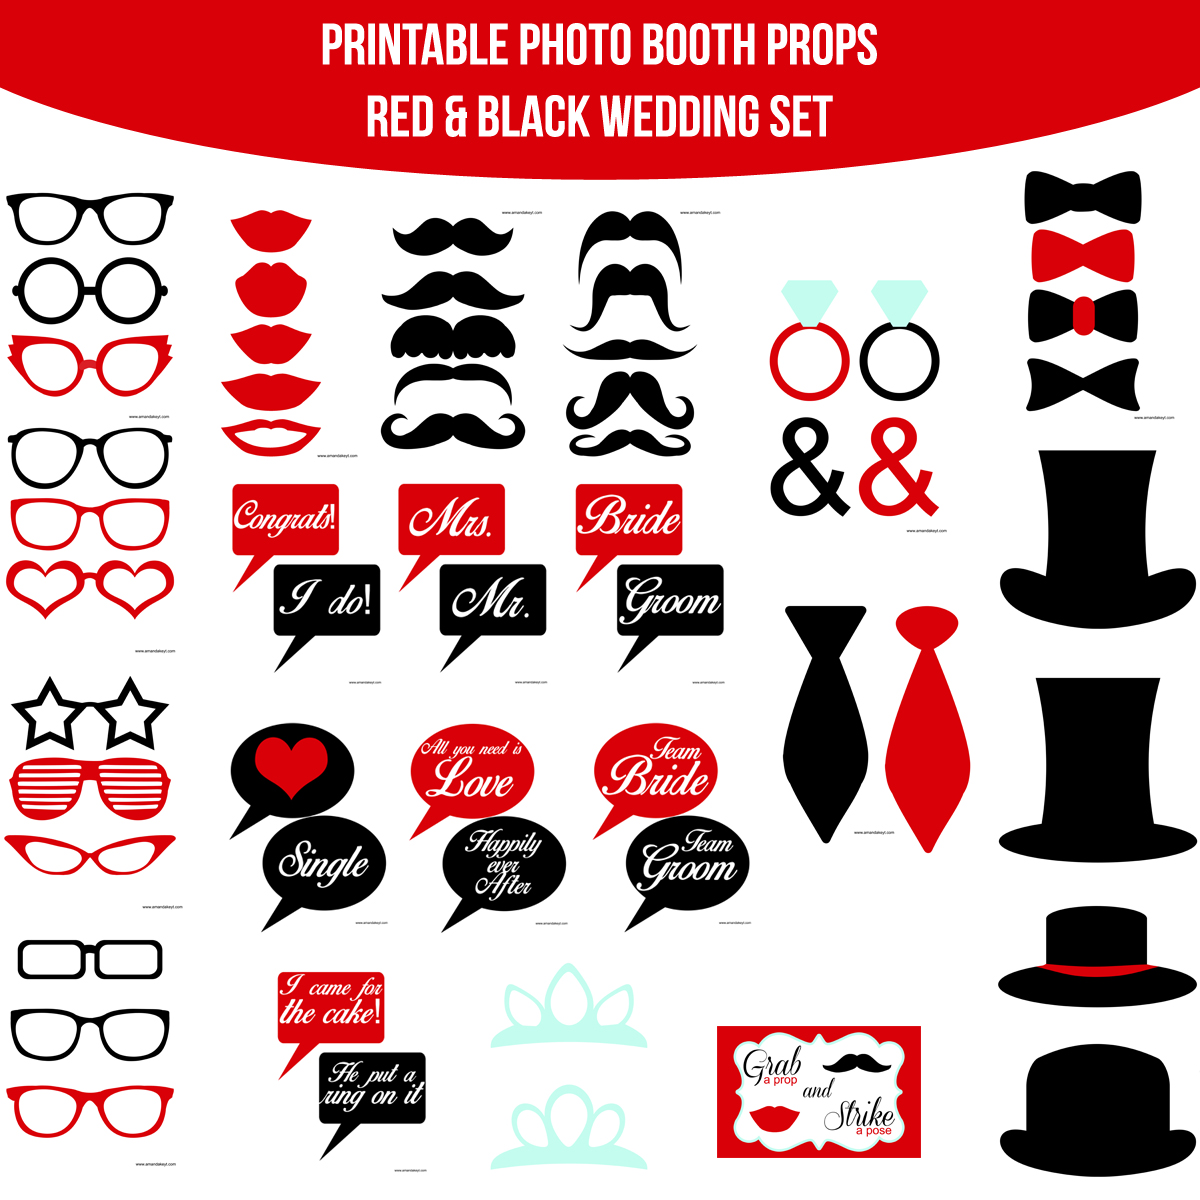 See the Set - To View The Whole Wedding Red Black Printable Photo Booth Prop Set Click Here